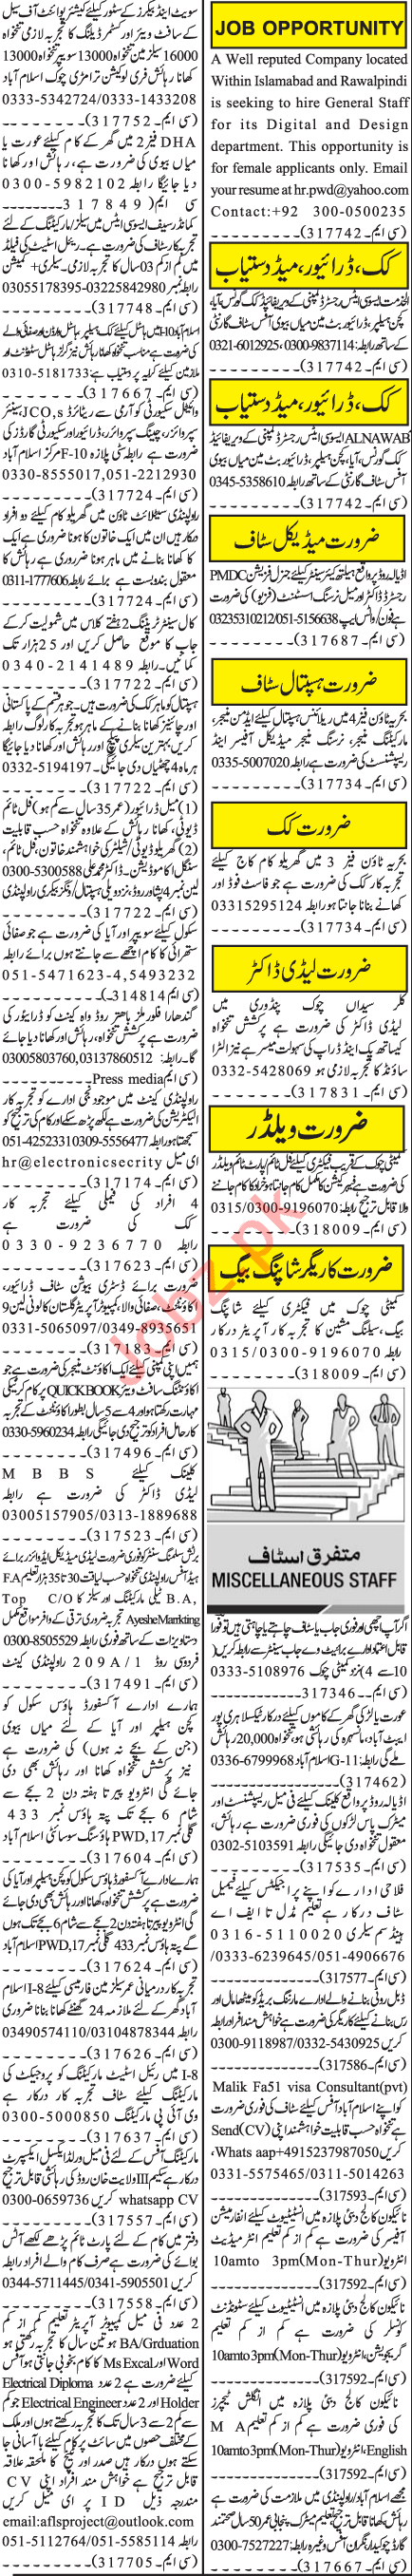 Jang Sunday Classified Ads 13 Sep 2020 for Multiple Staff